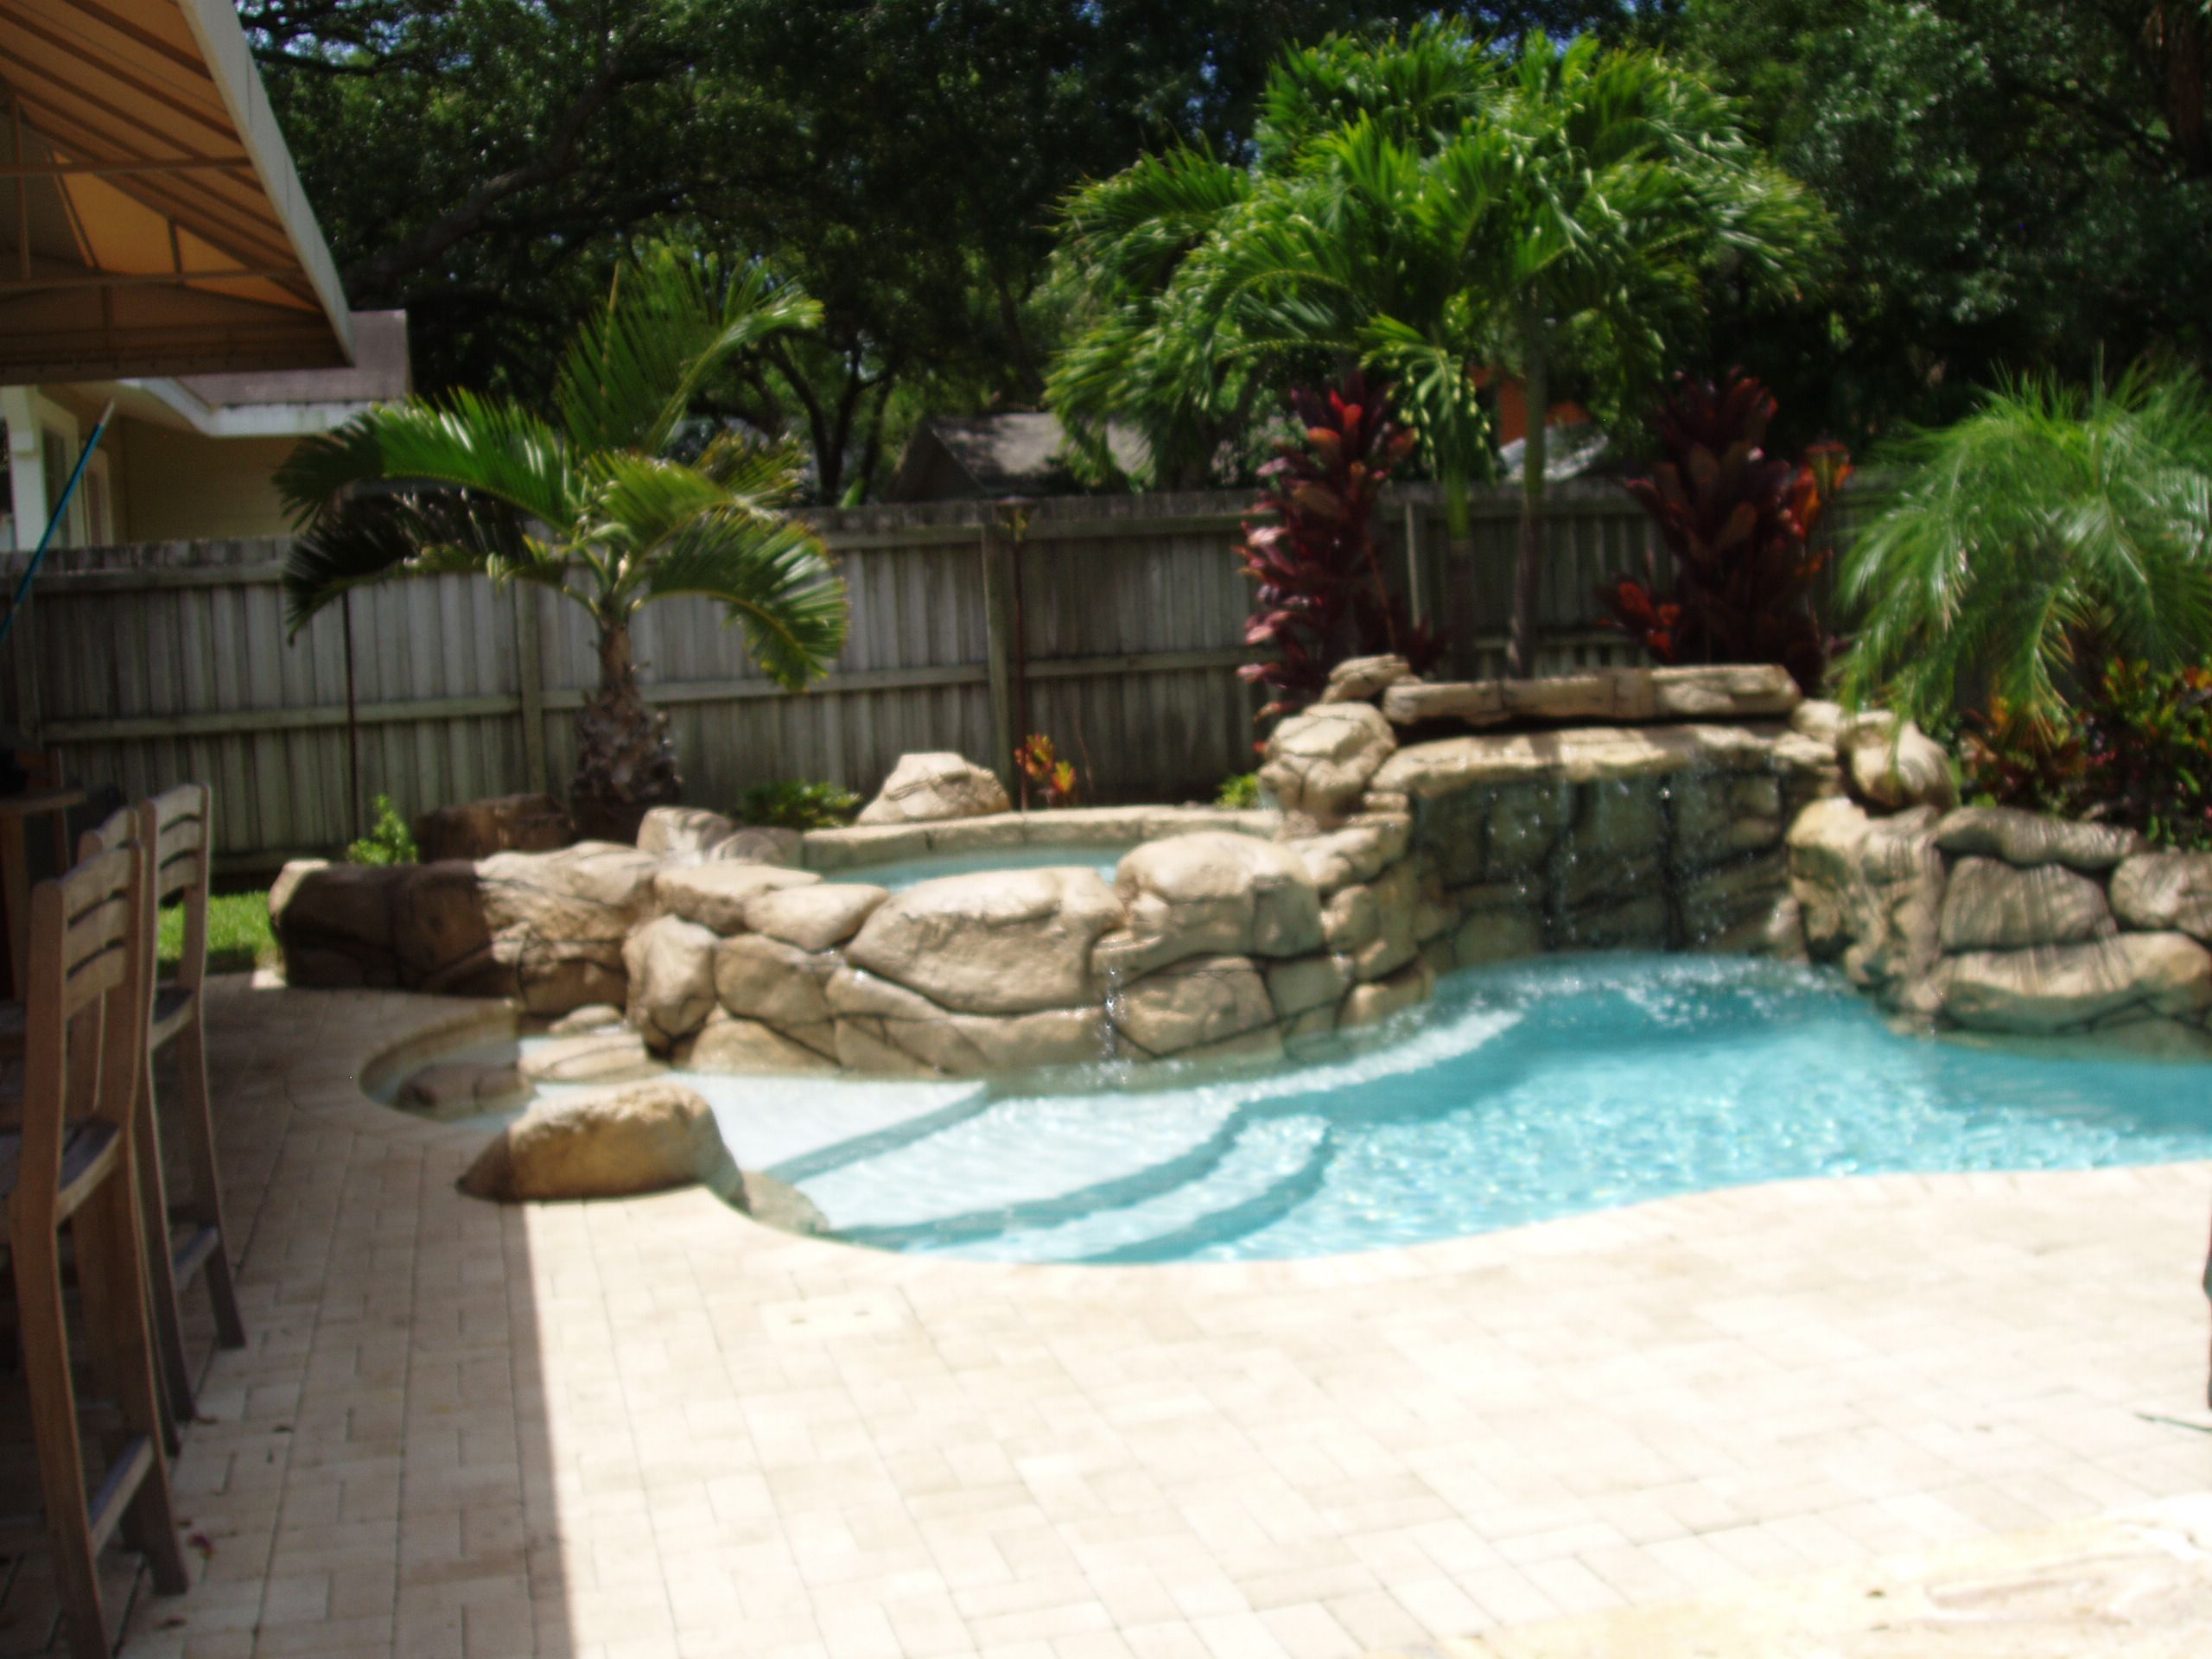 Mini Pools For Small Backyards Rock Pools Natural Springs Pools within 14 Some of the Coolest Tricks of How to Build Backyard Design Ideas With Pool